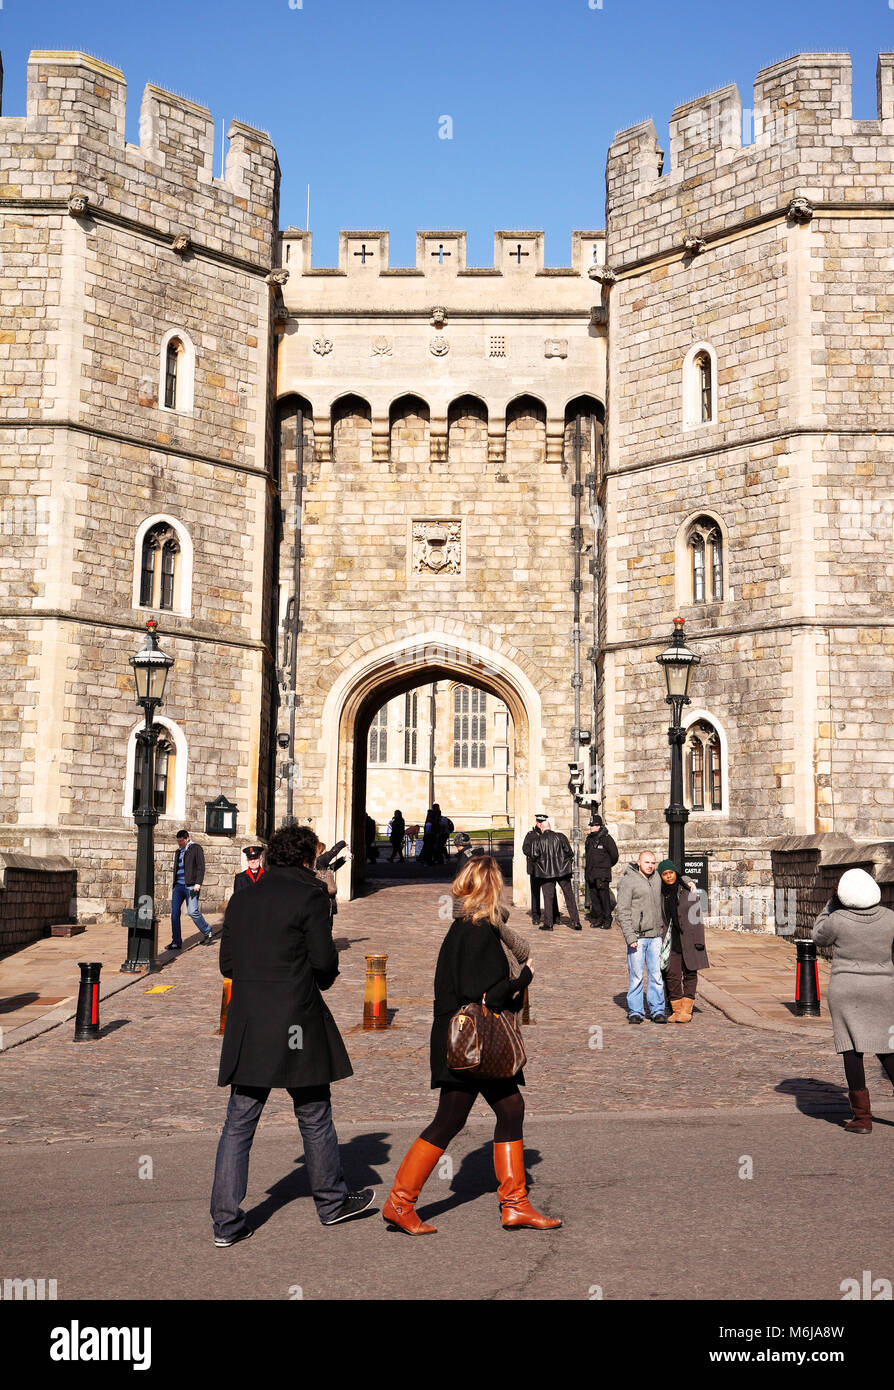 The Entrance to Windsor Castle in England with sightseers walking by - Stock Image